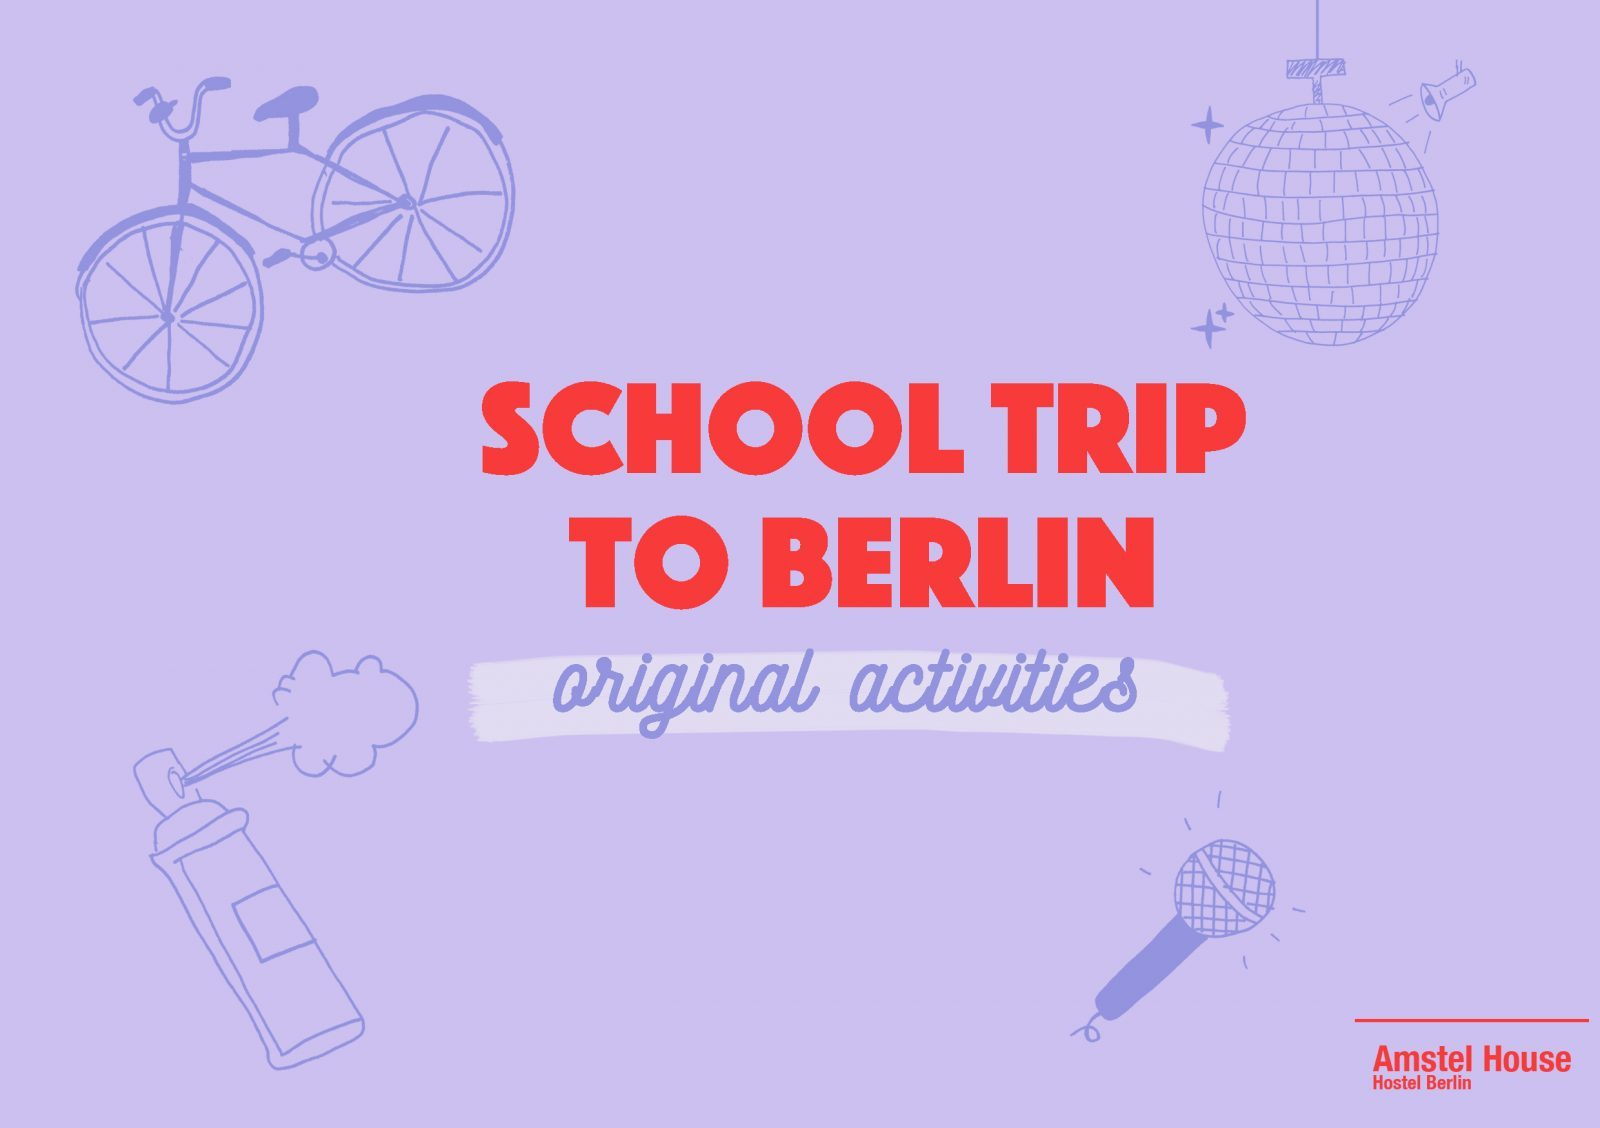 school trip to berlin - fun activities for students of all ages